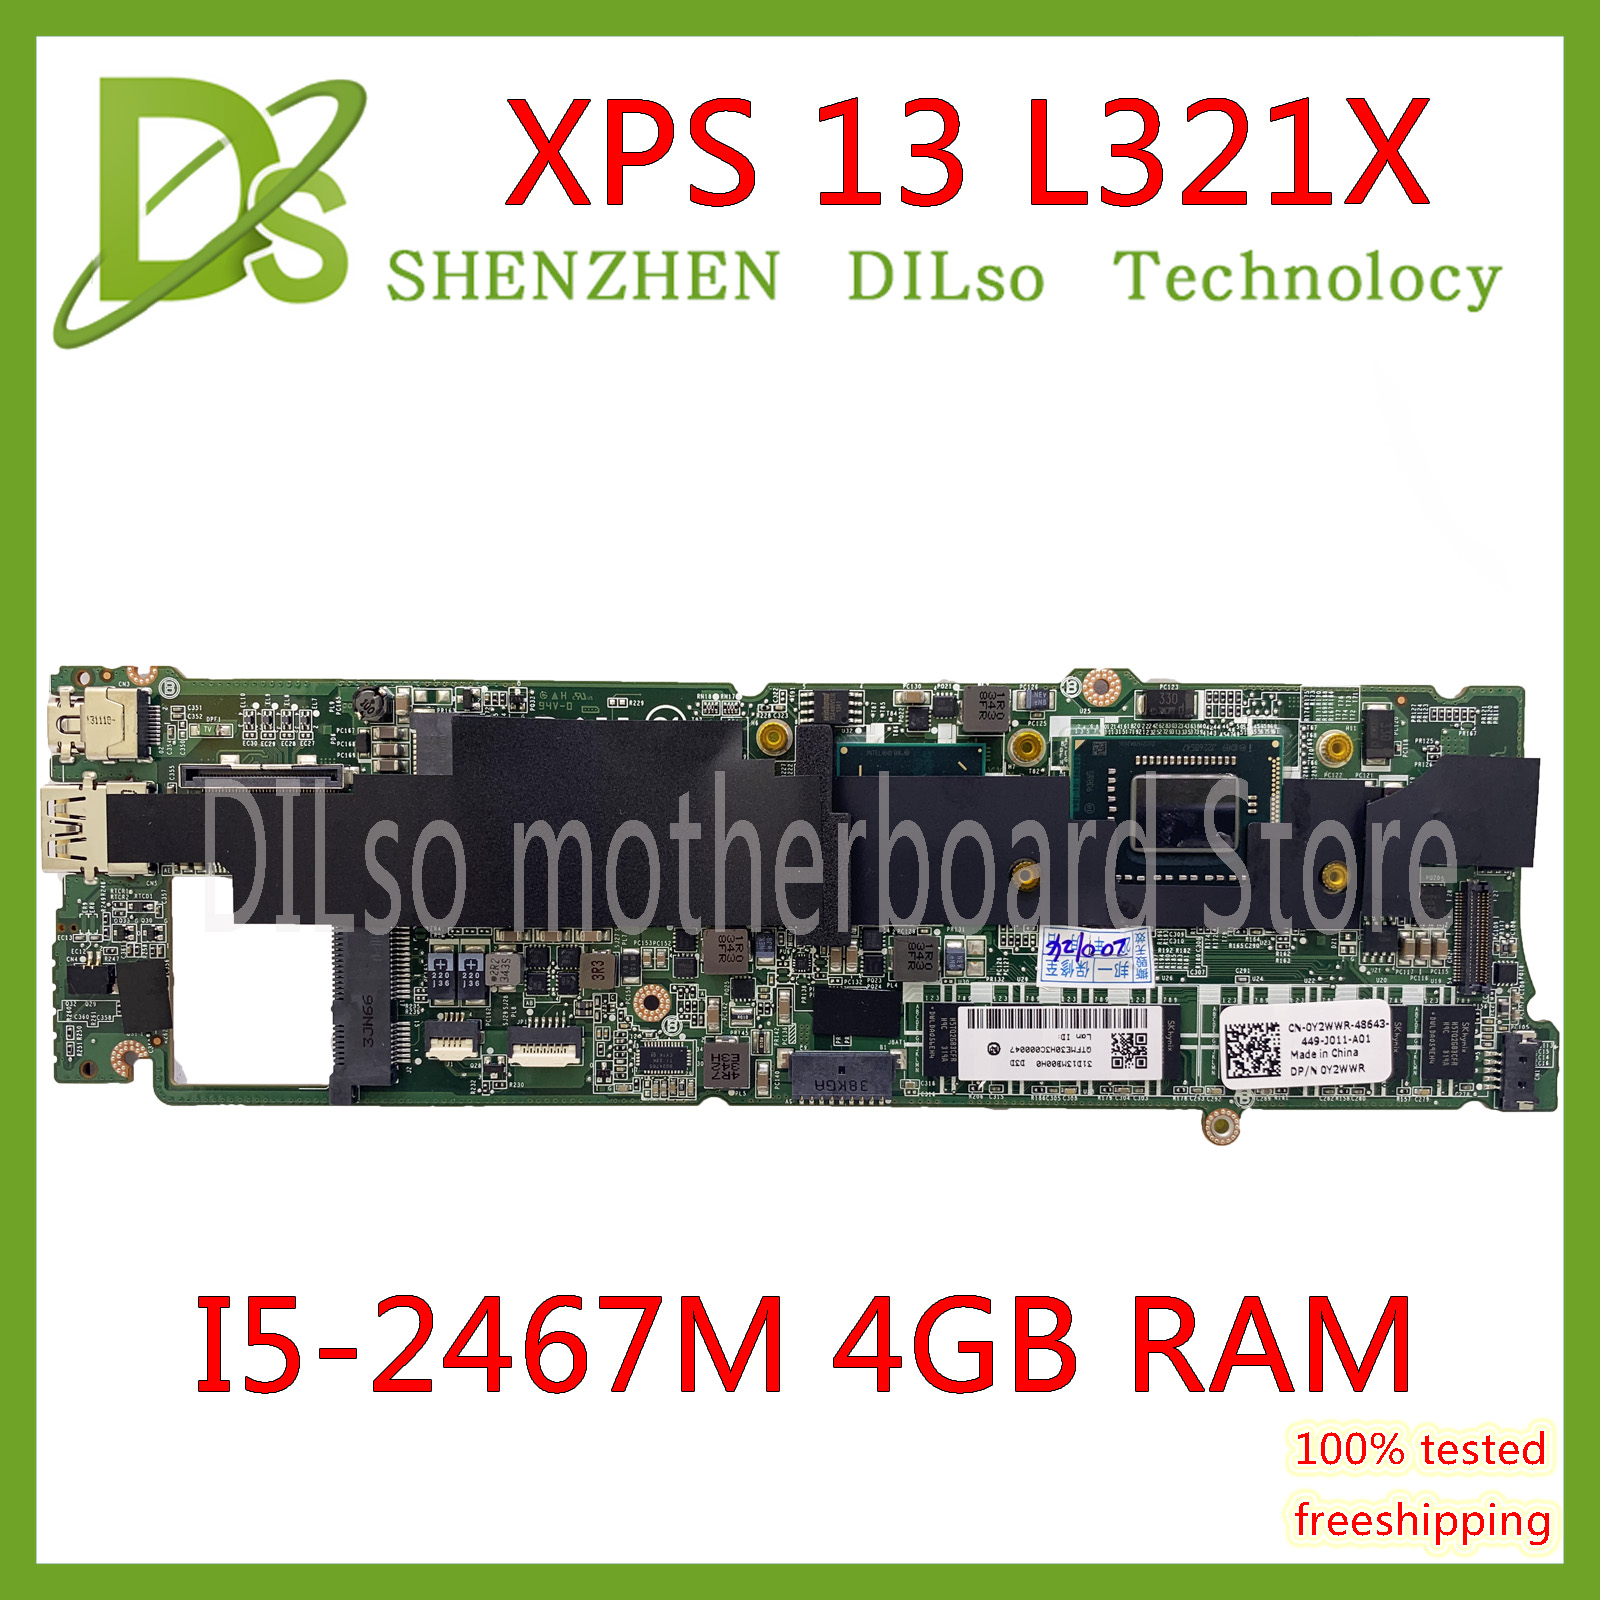 KEFU L321X Motherboard FOR Dell XPS 13 L321X Laptop Motherboard I5-2467M 4G DDR3L DA0D13MBCD1 Fully Tested 100% Work